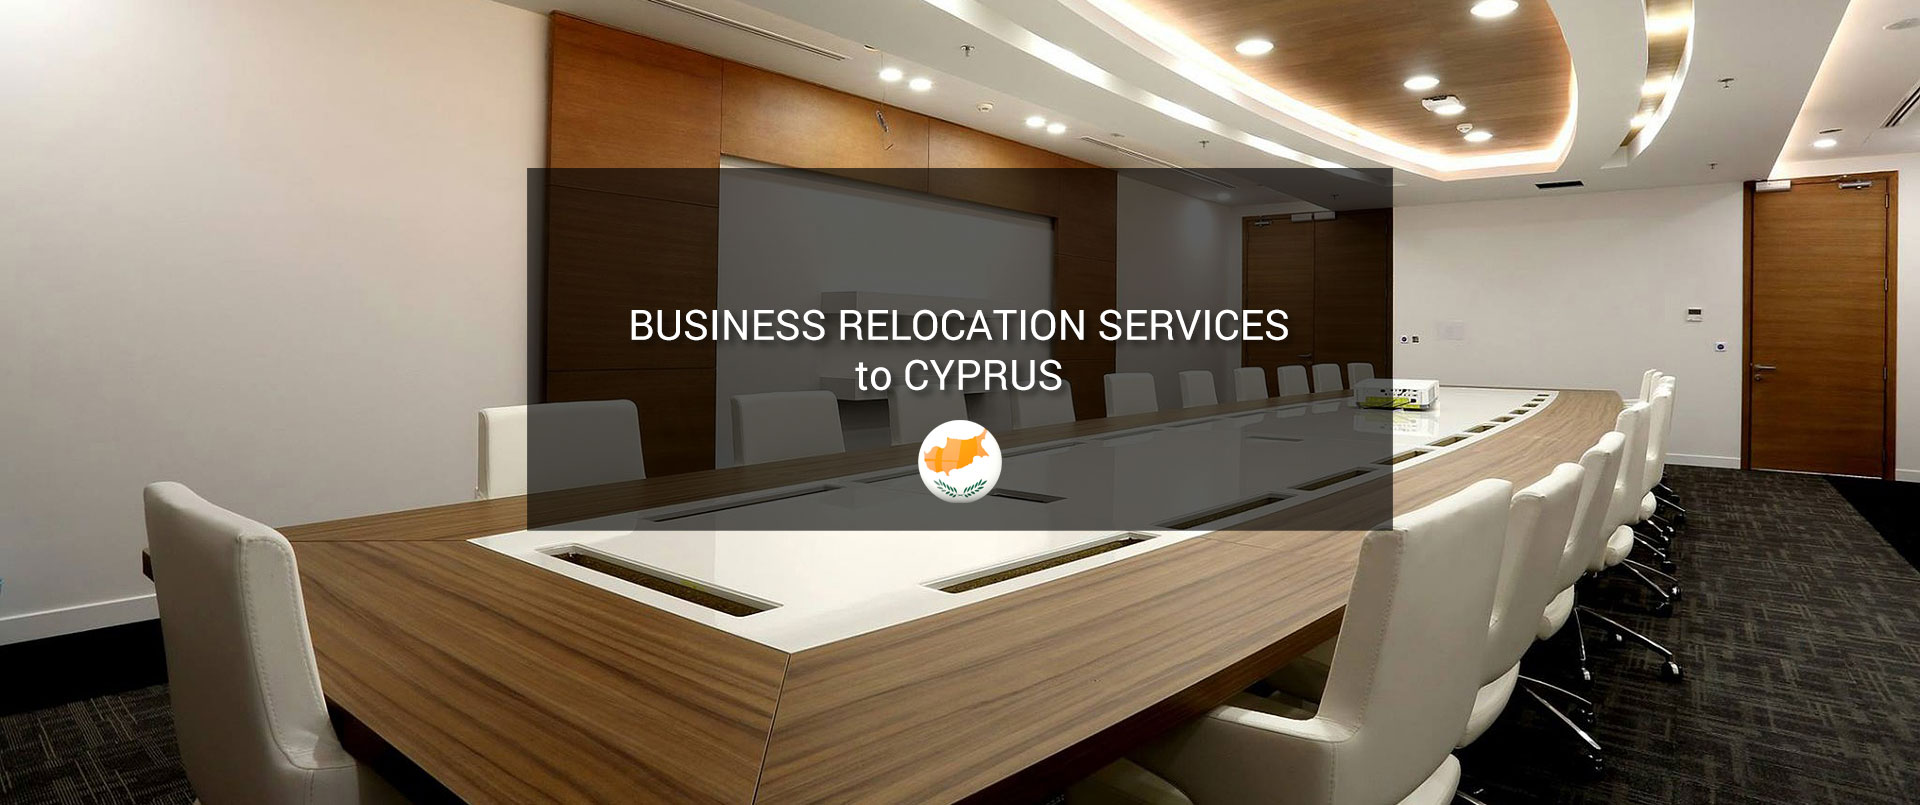 Business Relocation Services to Cyprus